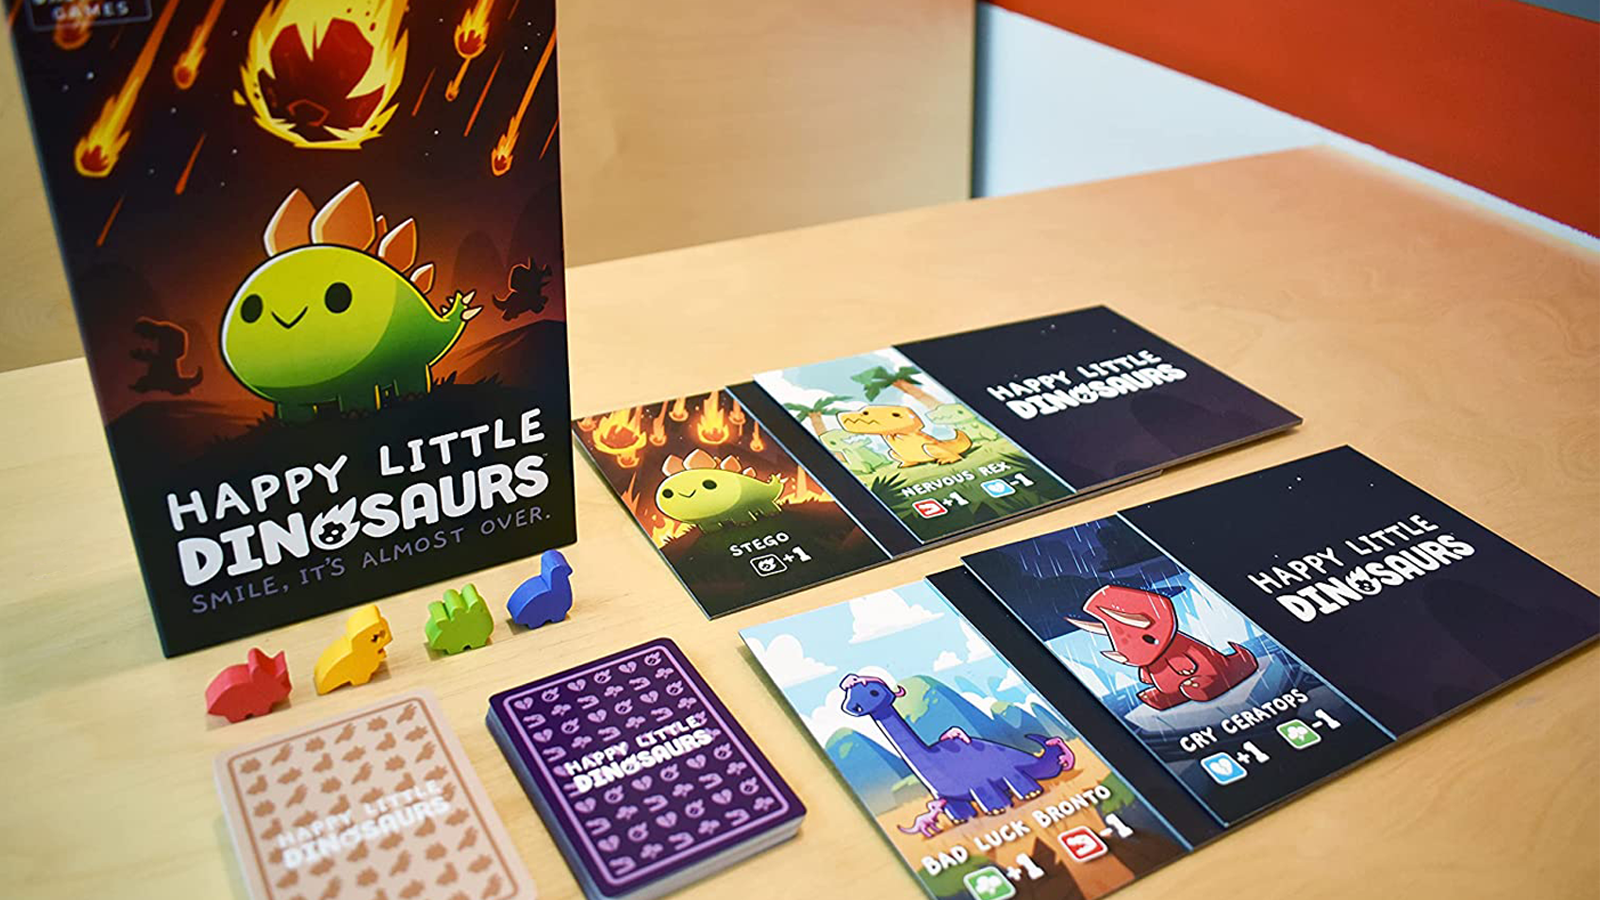 Game components laid out on table